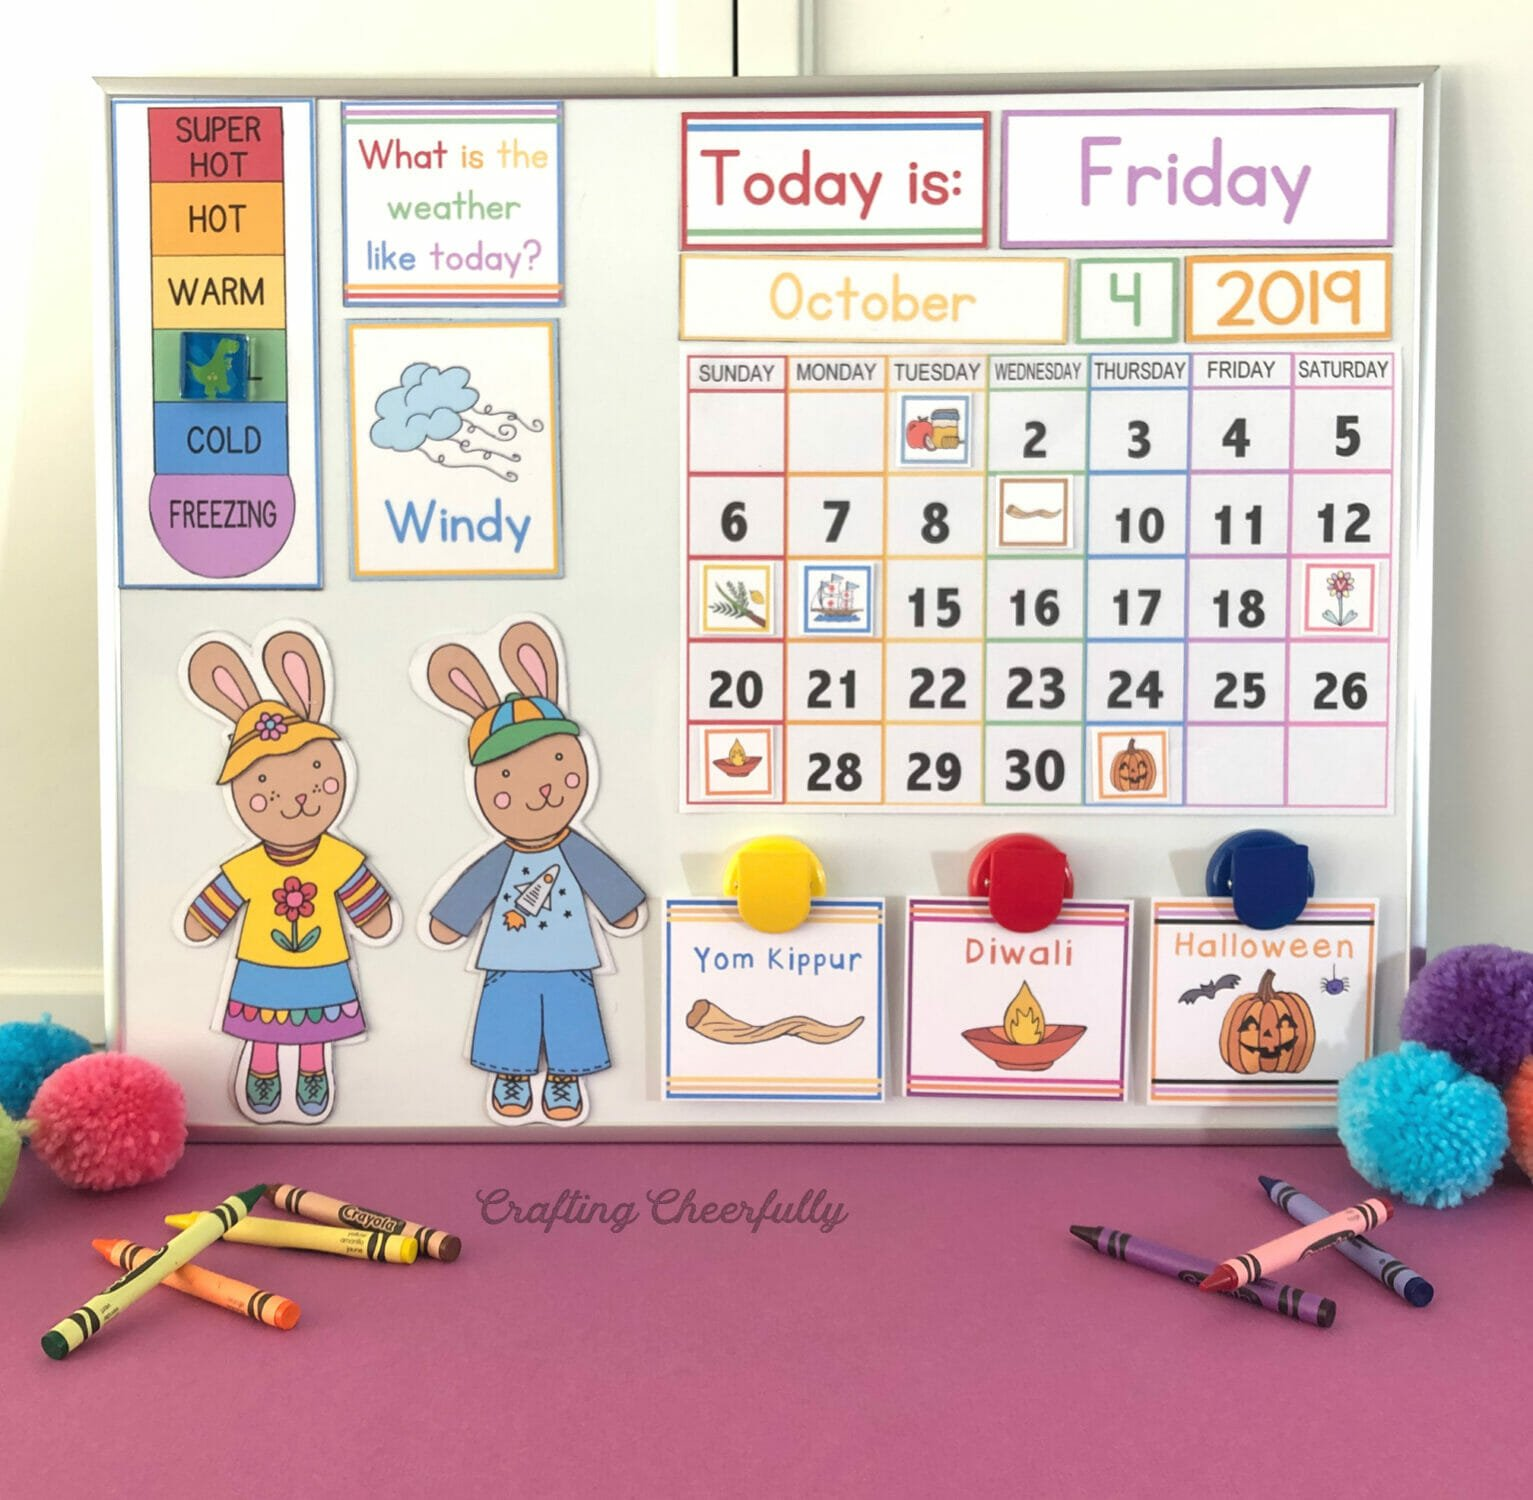 DIY Children's Calendar with holiday cards